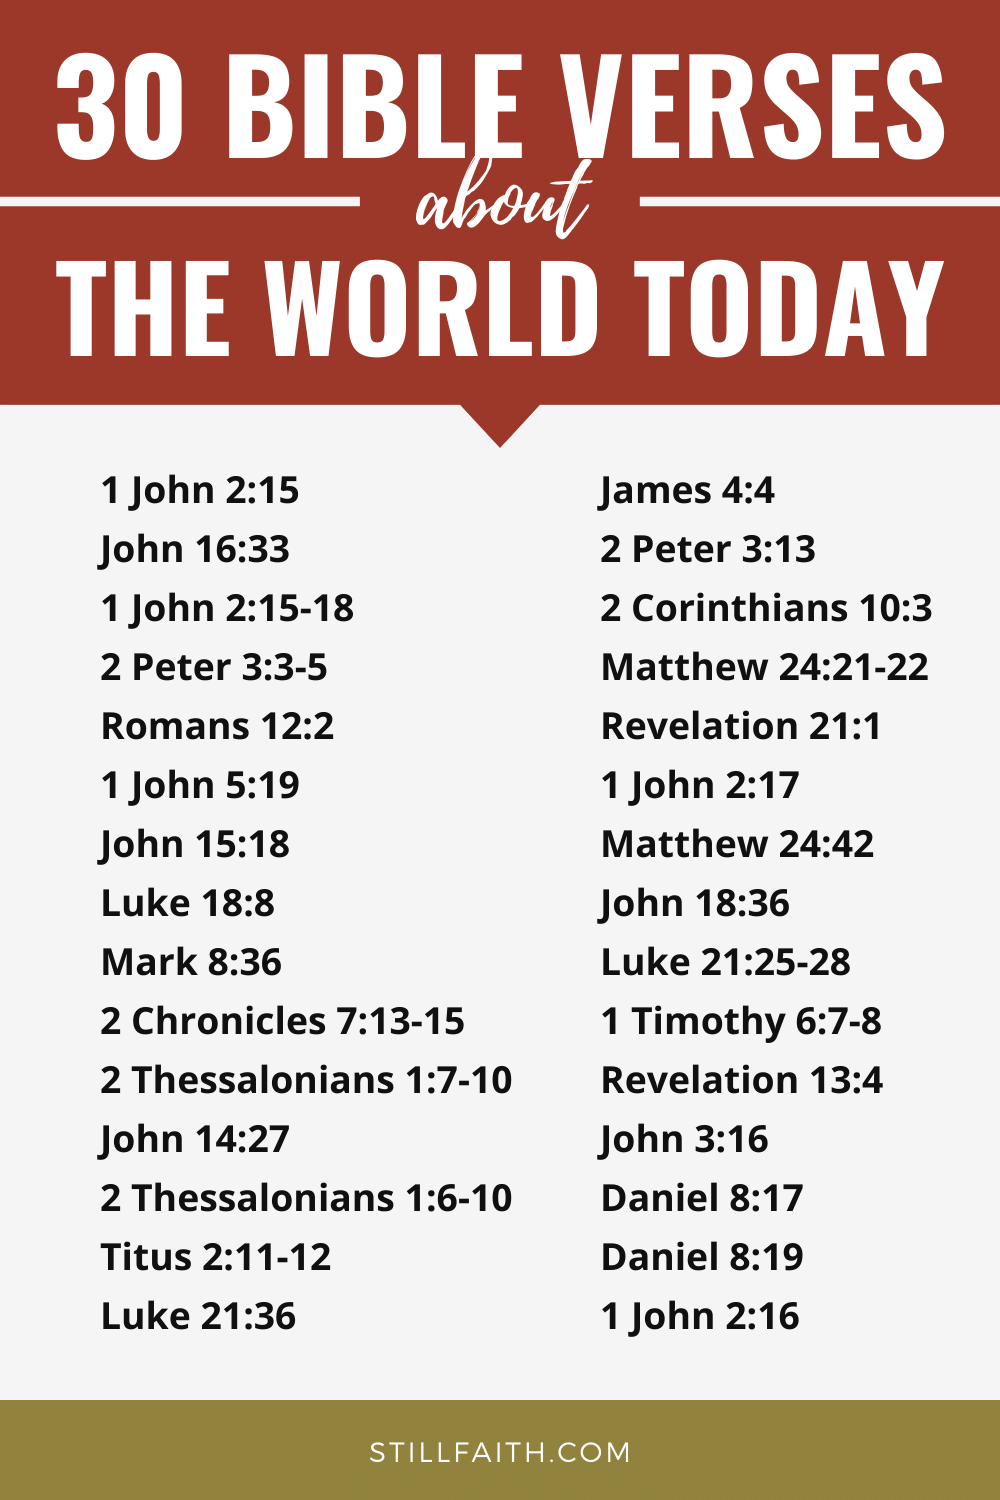 208 Bible Verses about the World Today